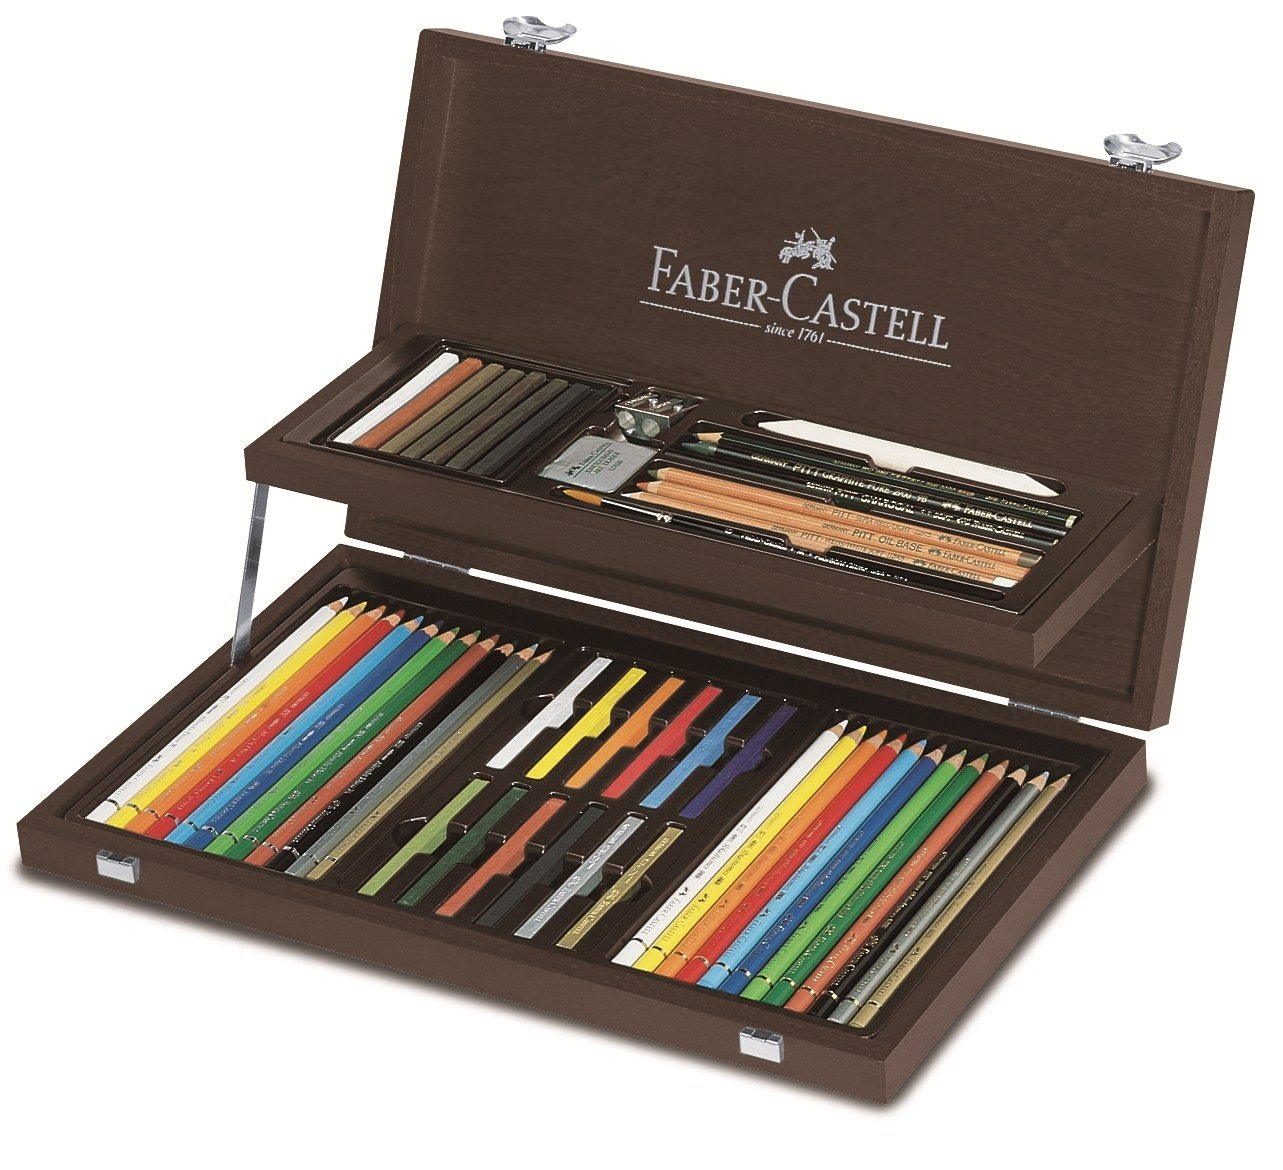 Faber-Castell - Art & Graphic COMPENDIUM wood case (110088)